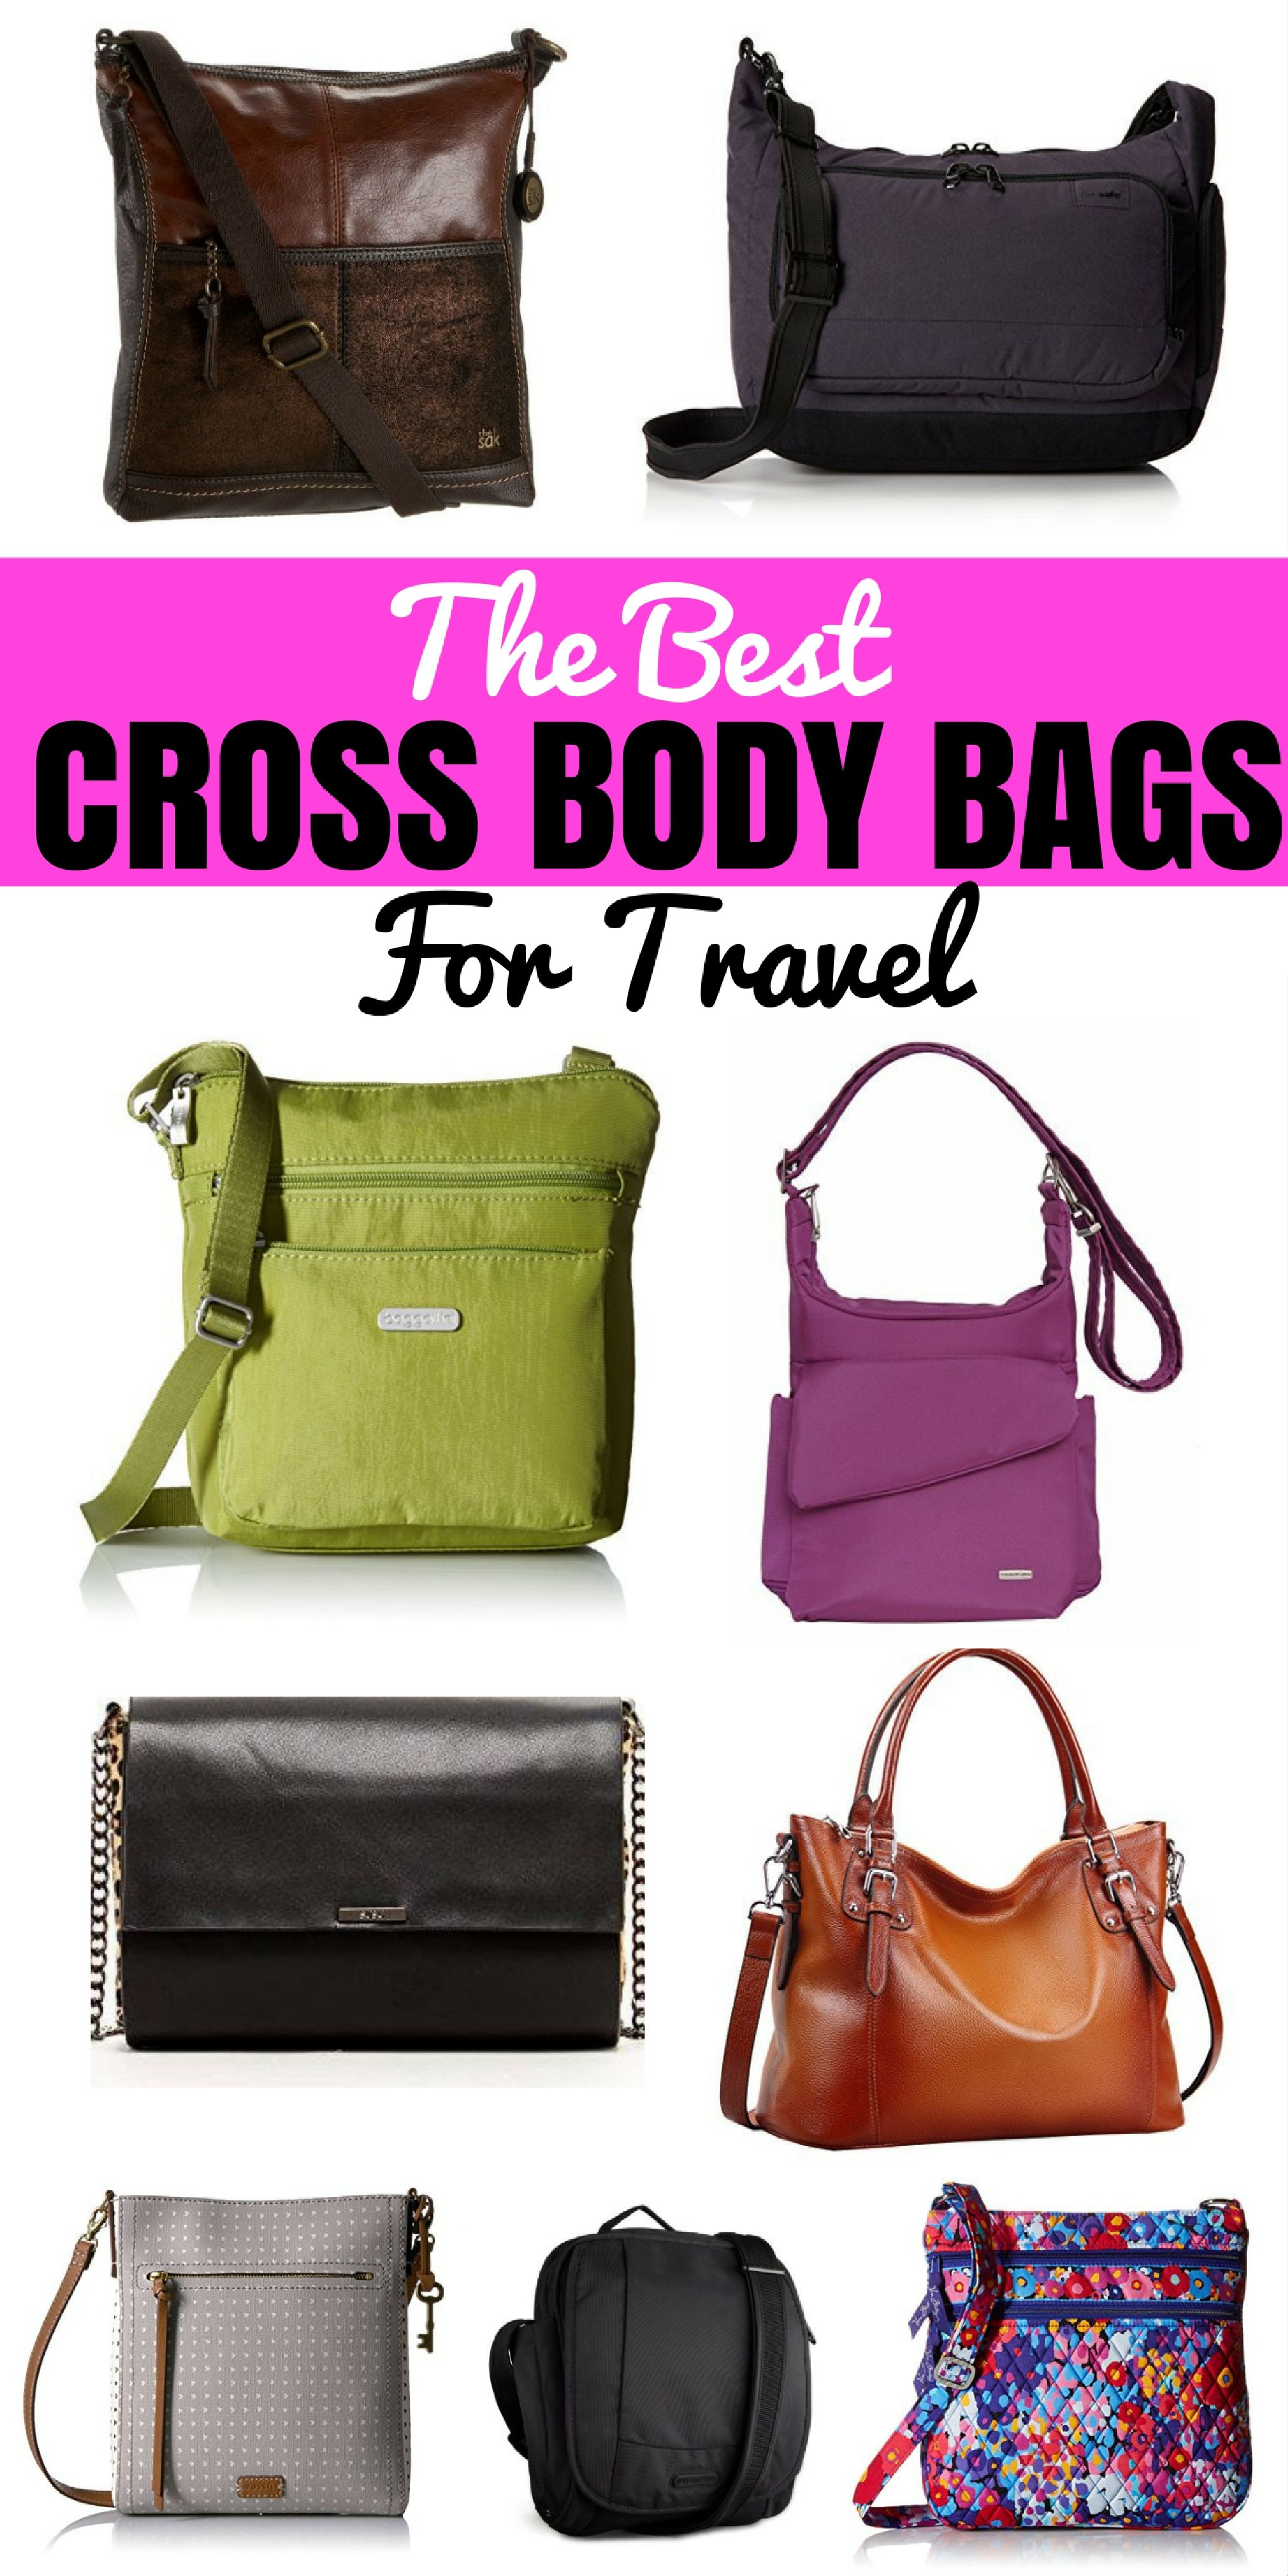 These Are The Ultimate Best Cross Body Bags We Ve Reviewed Dozens Of Purses So You Fine Right One For Click Here To Find See Them